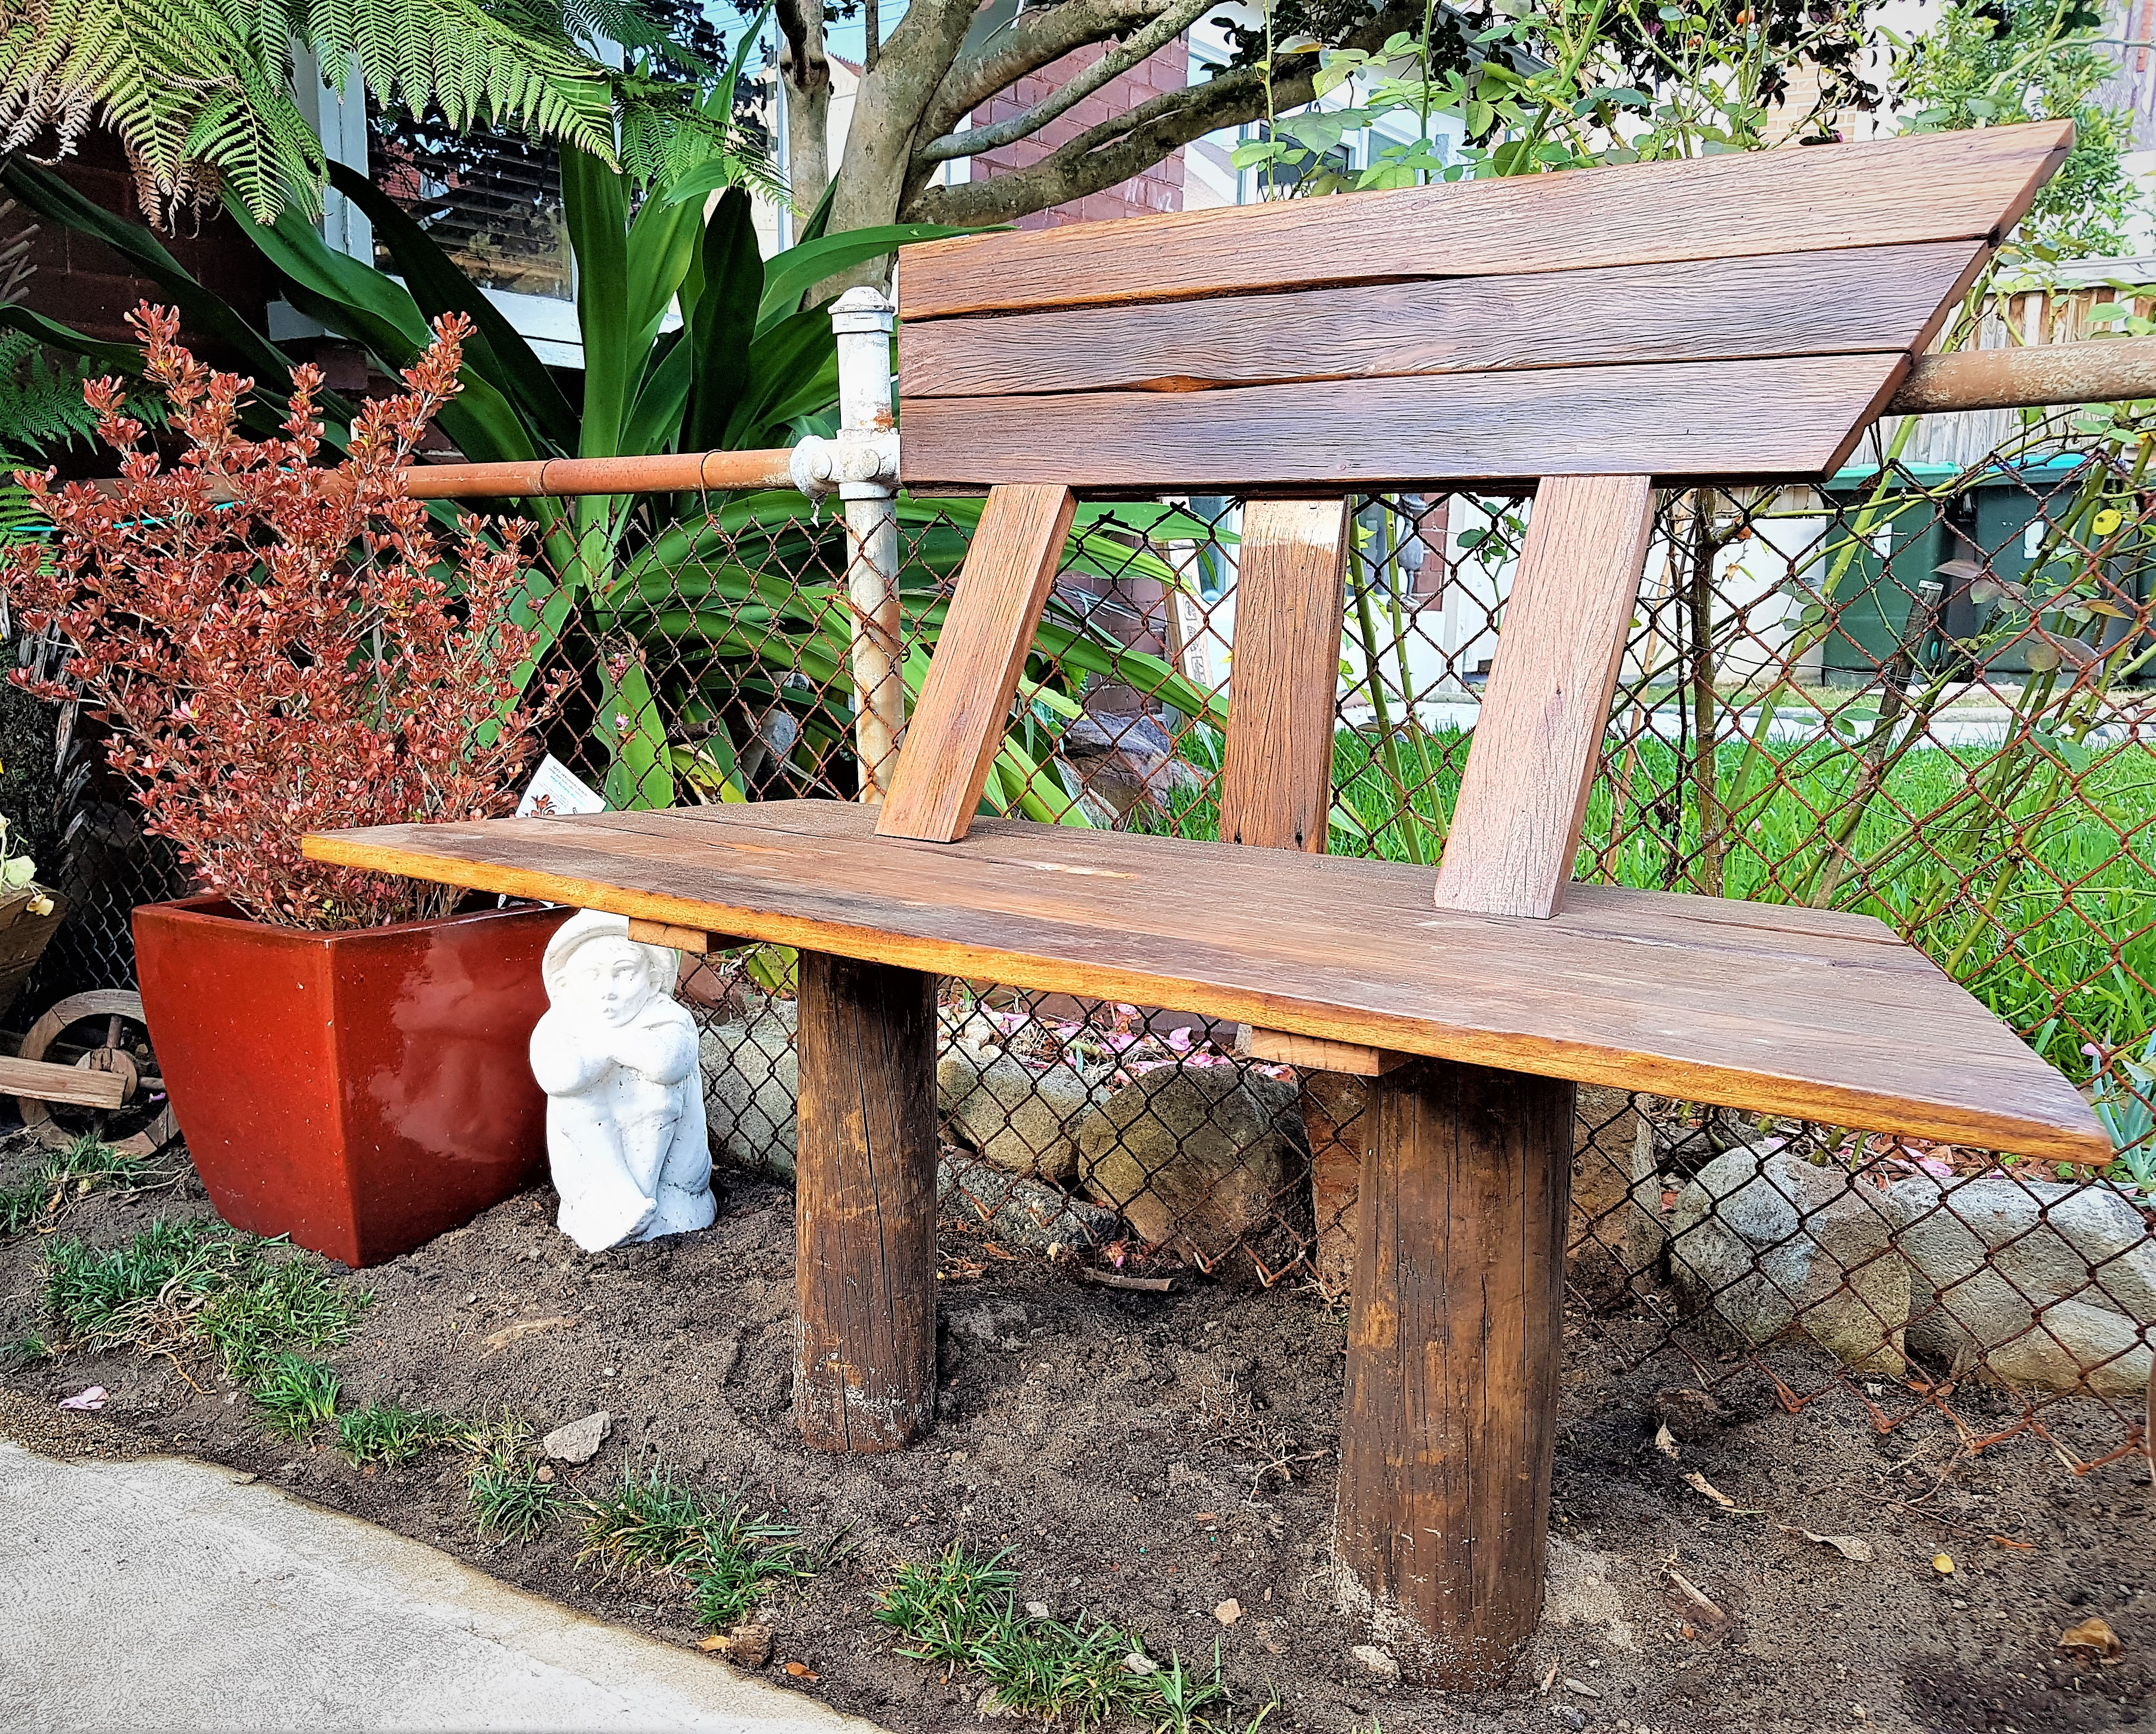 Cj projects garden bench